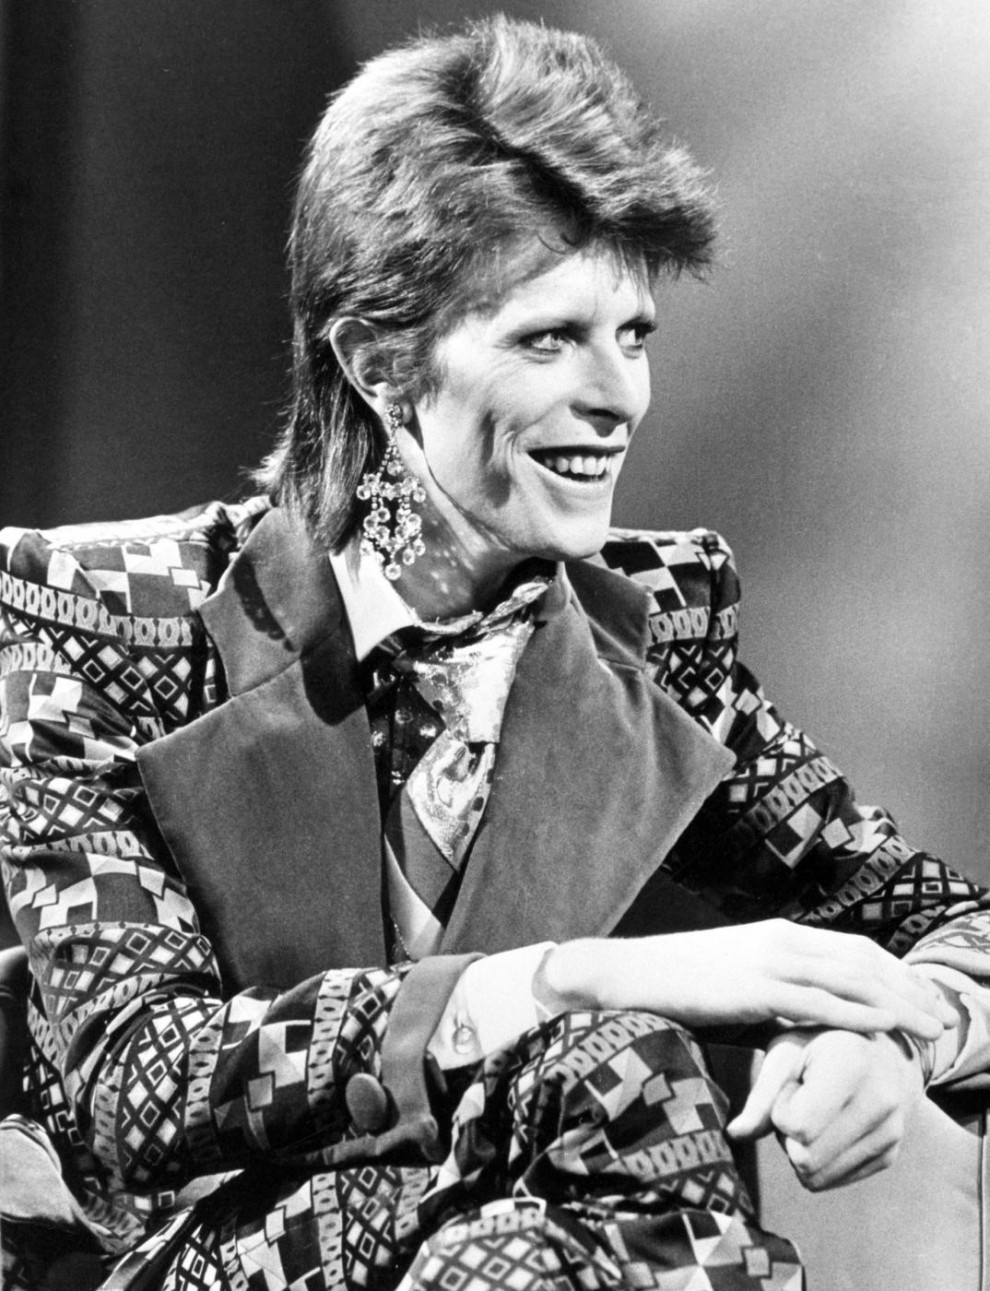 Morto David Bowie